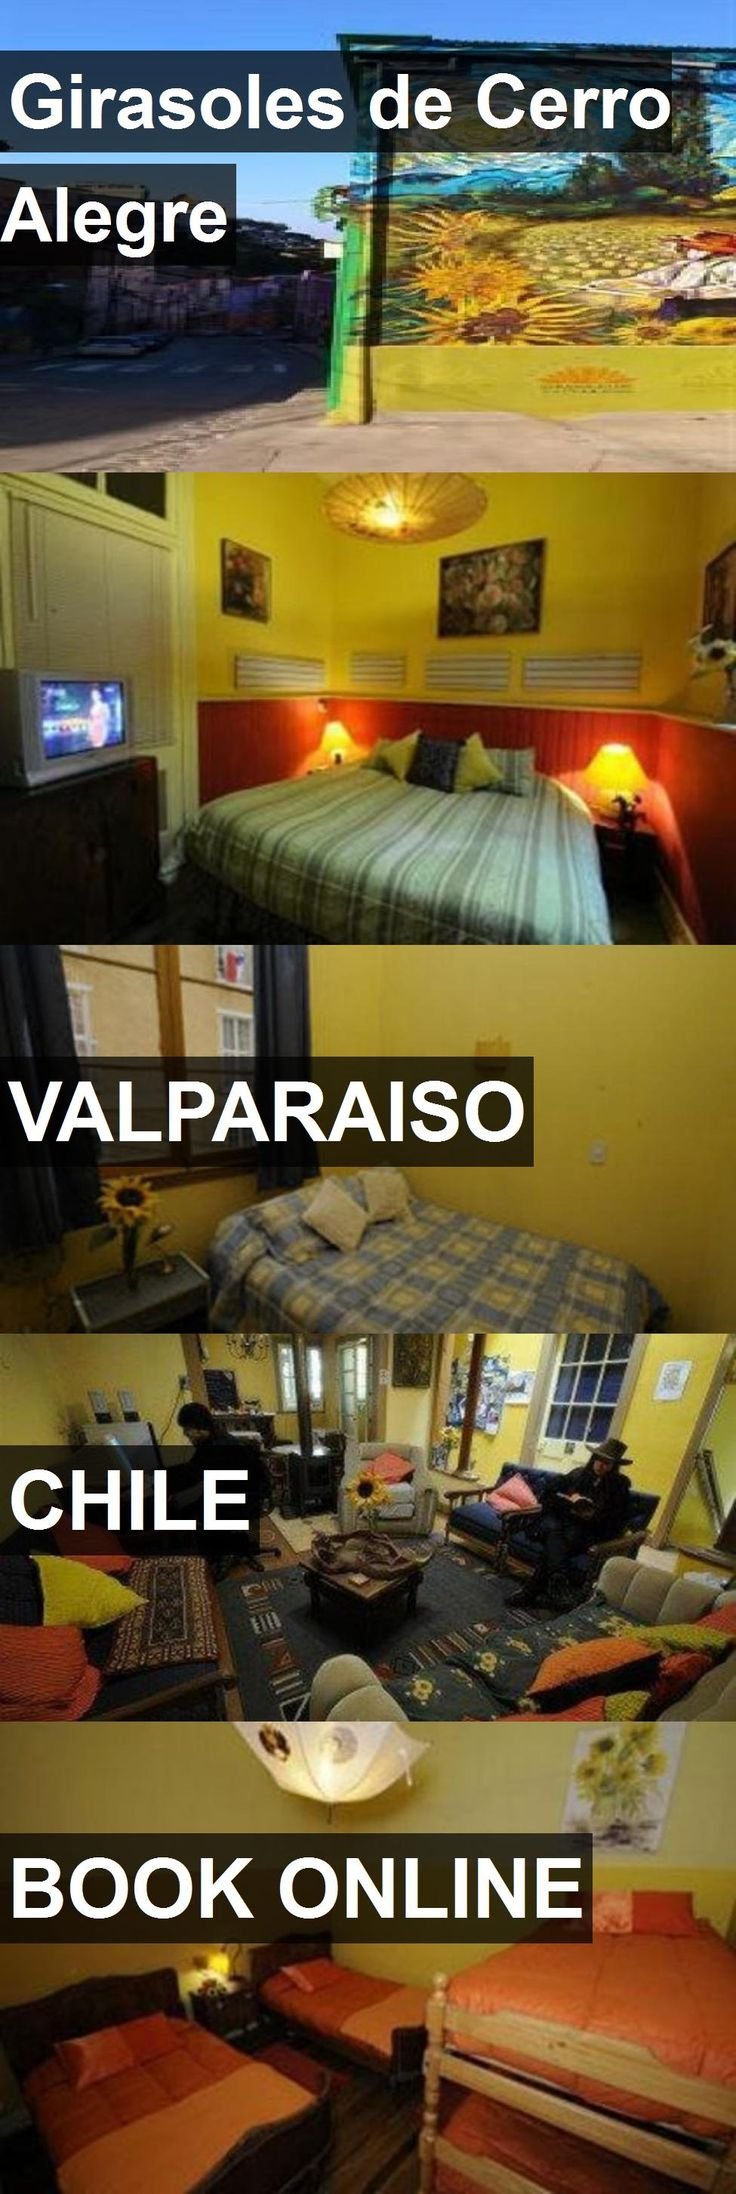 Hotel Girasoles de Cerro Alegre in Valparaiso, Chile. For more information, photos, reviews and best prices please follow the link. #Chile #Valparaiso #GirasolesdeCerroAlegre #hotel #travel #vacation